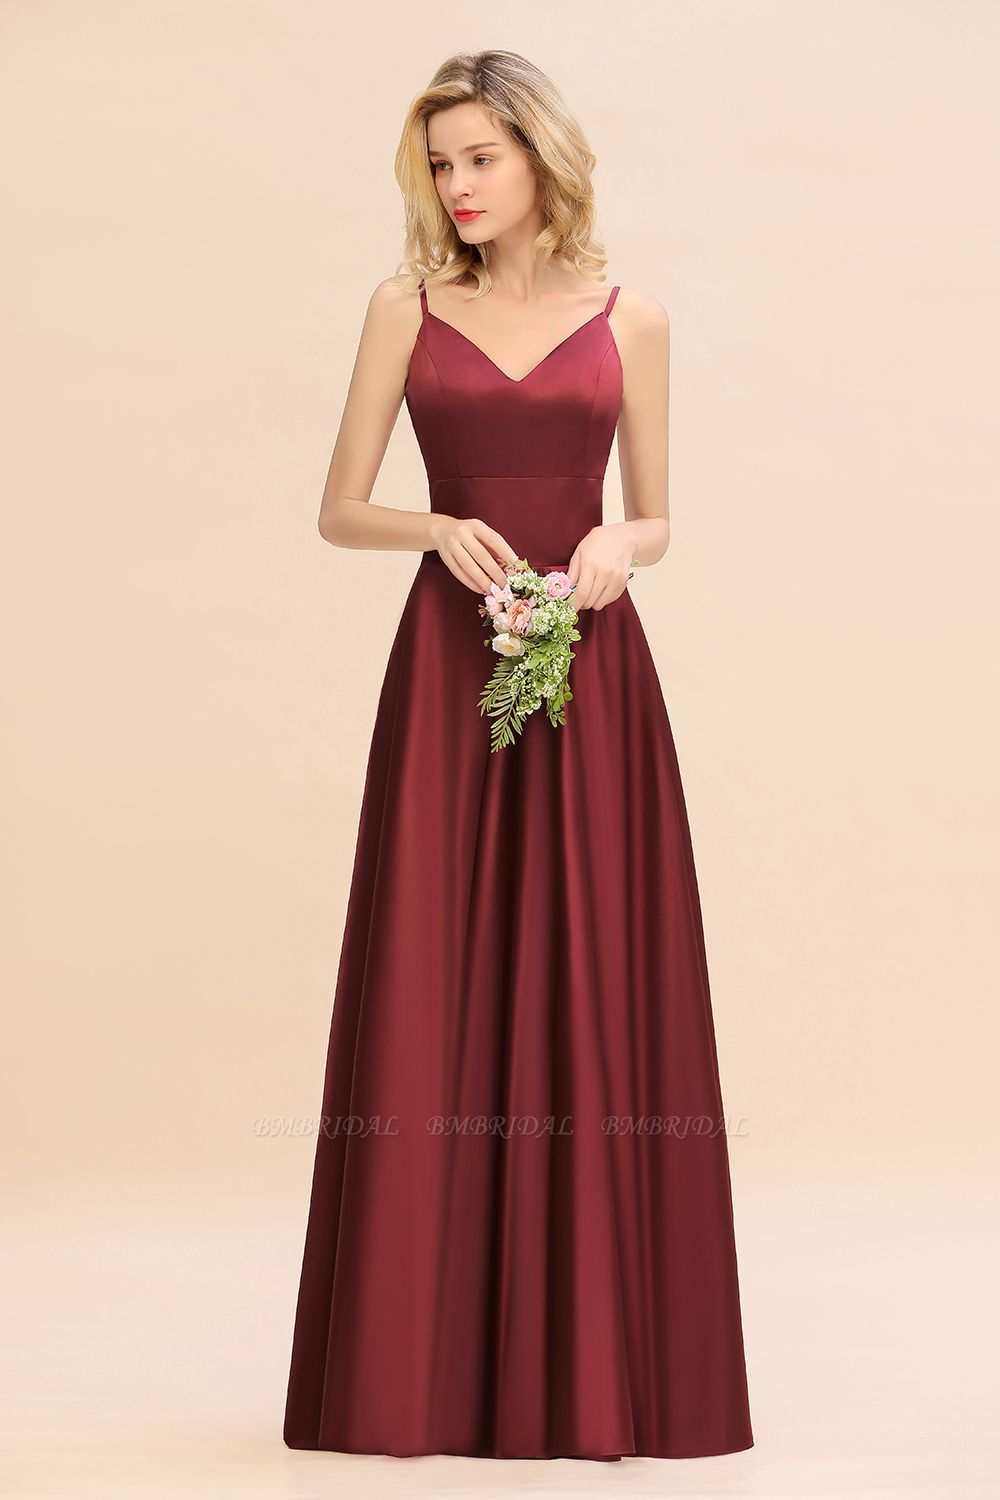 BMbridal Chic Spaghetti-Straps Burgundy Satin Long Bridesmaid Dress Online